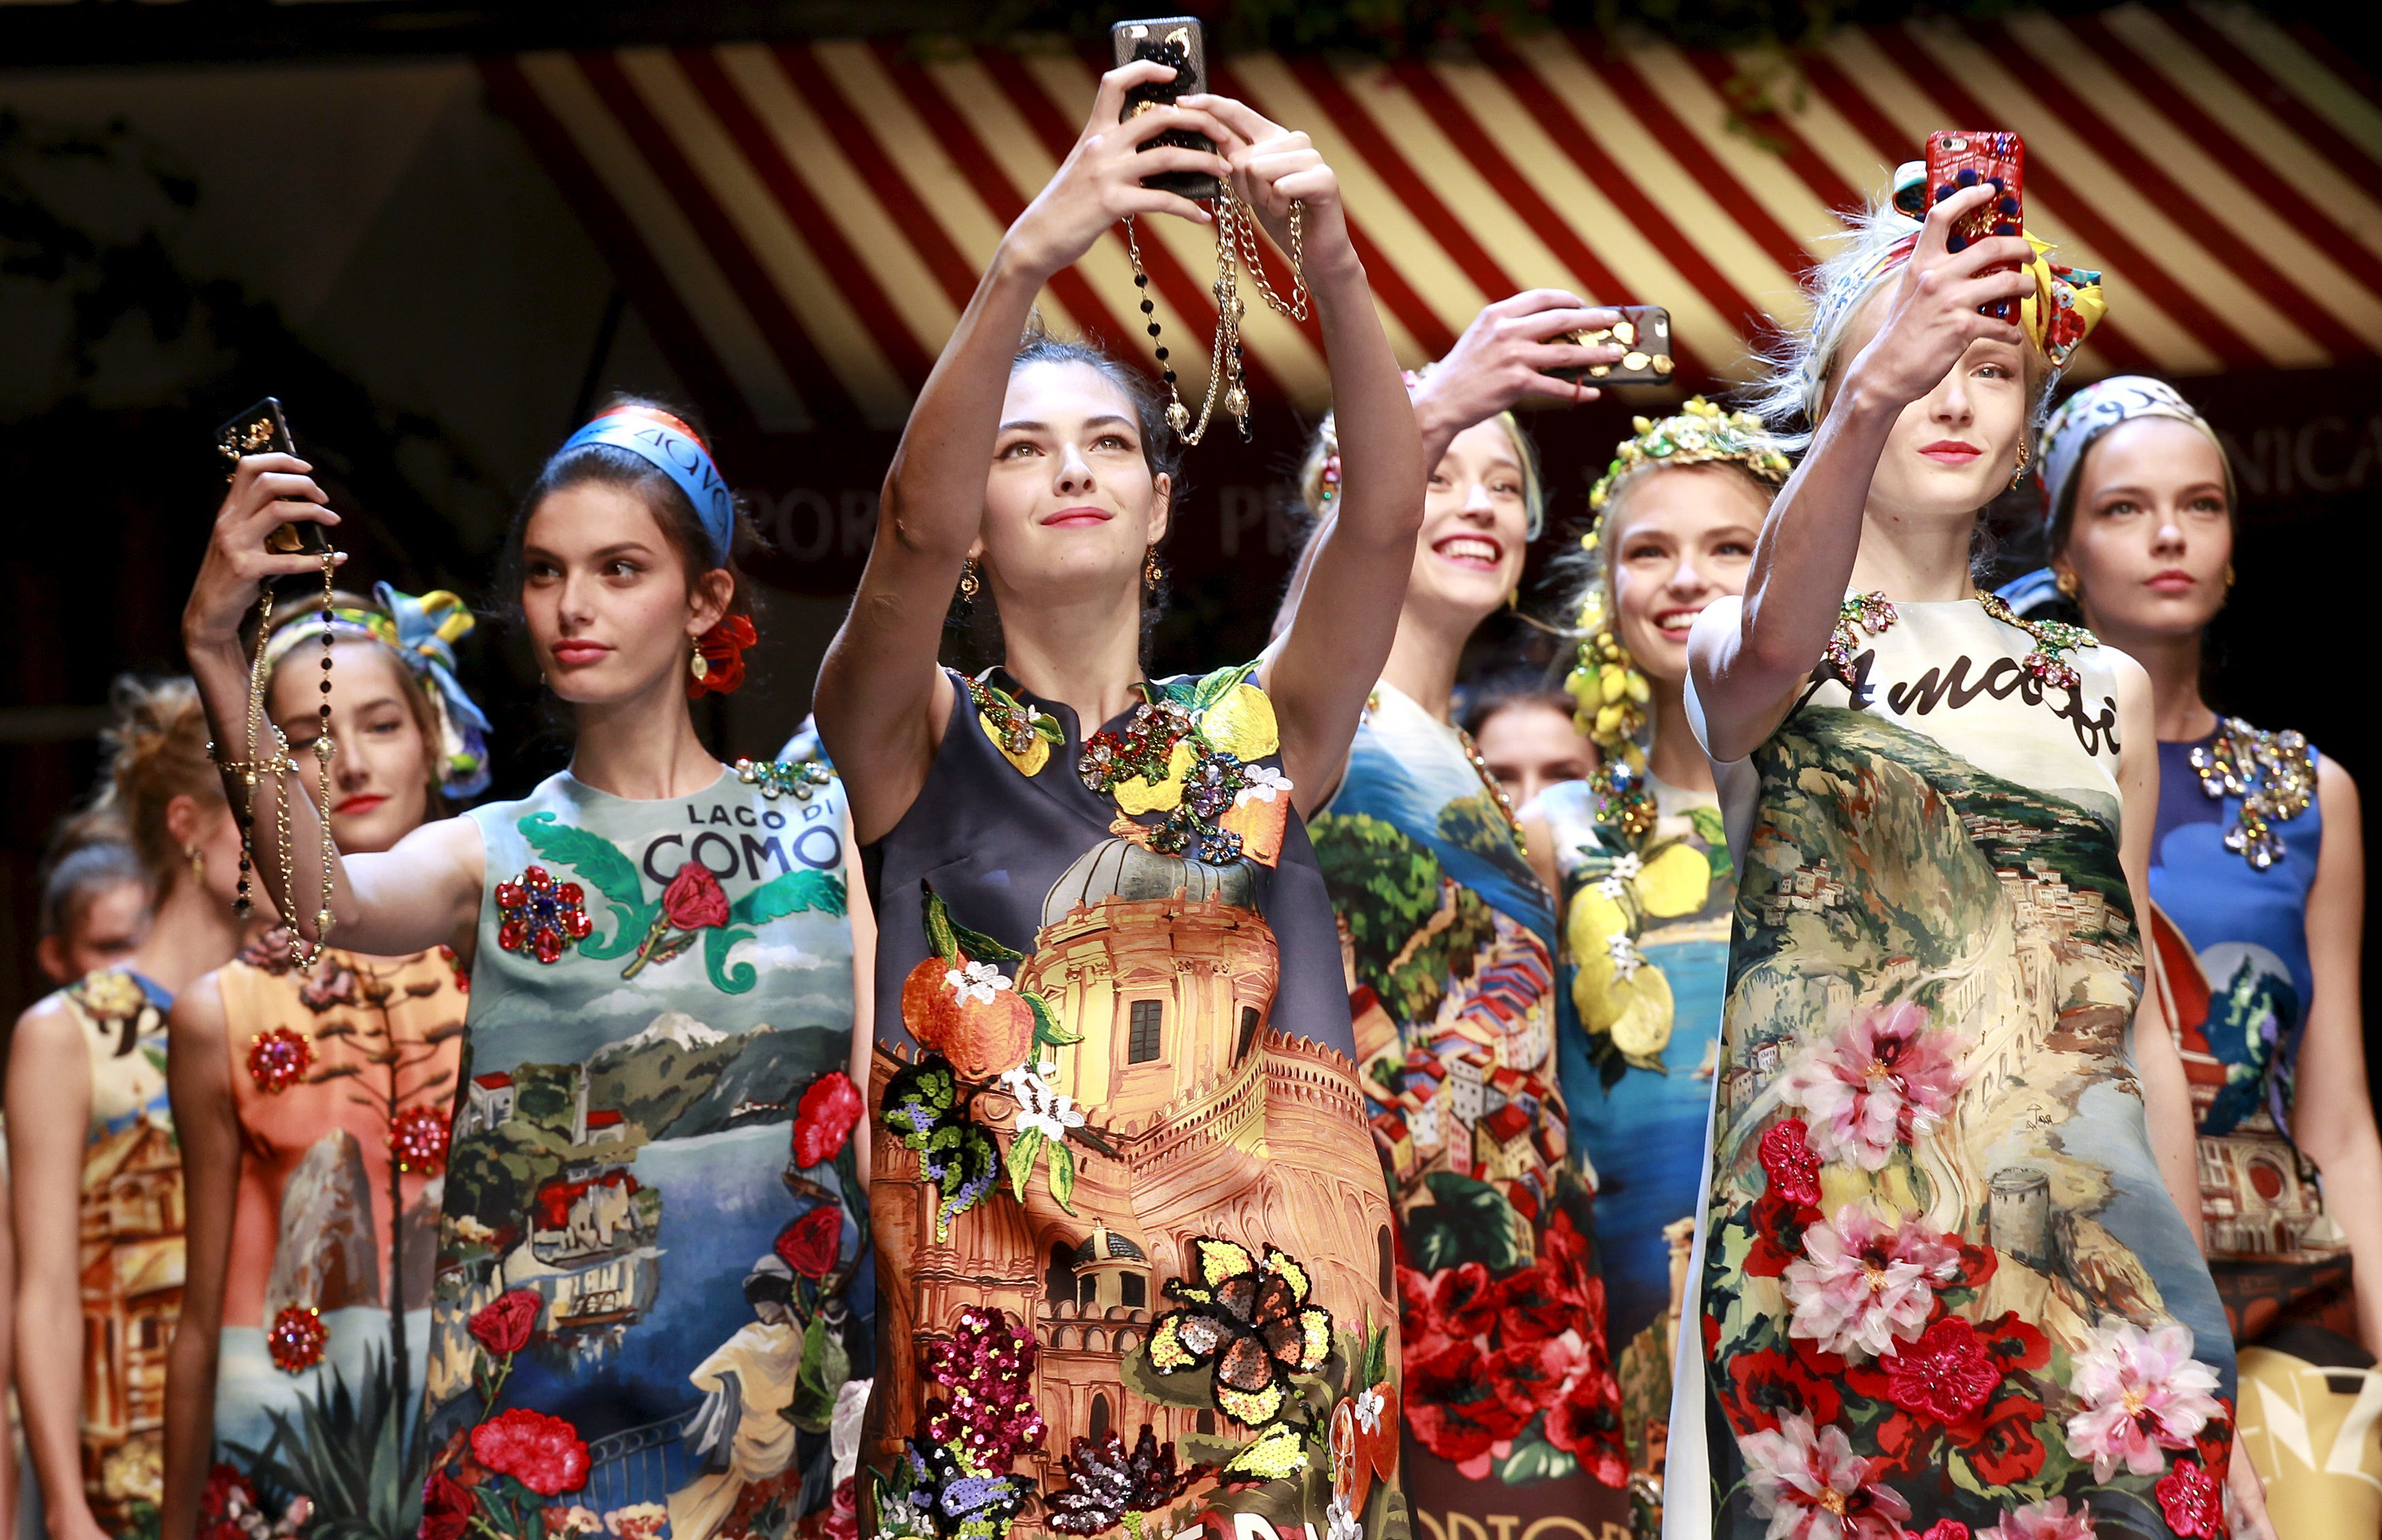 Models take selfie with mobile phones during the parade at the end of the Dolce & Gabbana Spring/Summer 2016 collection during Milan Fashion Week in Italy, on Sept. 27, 2015.